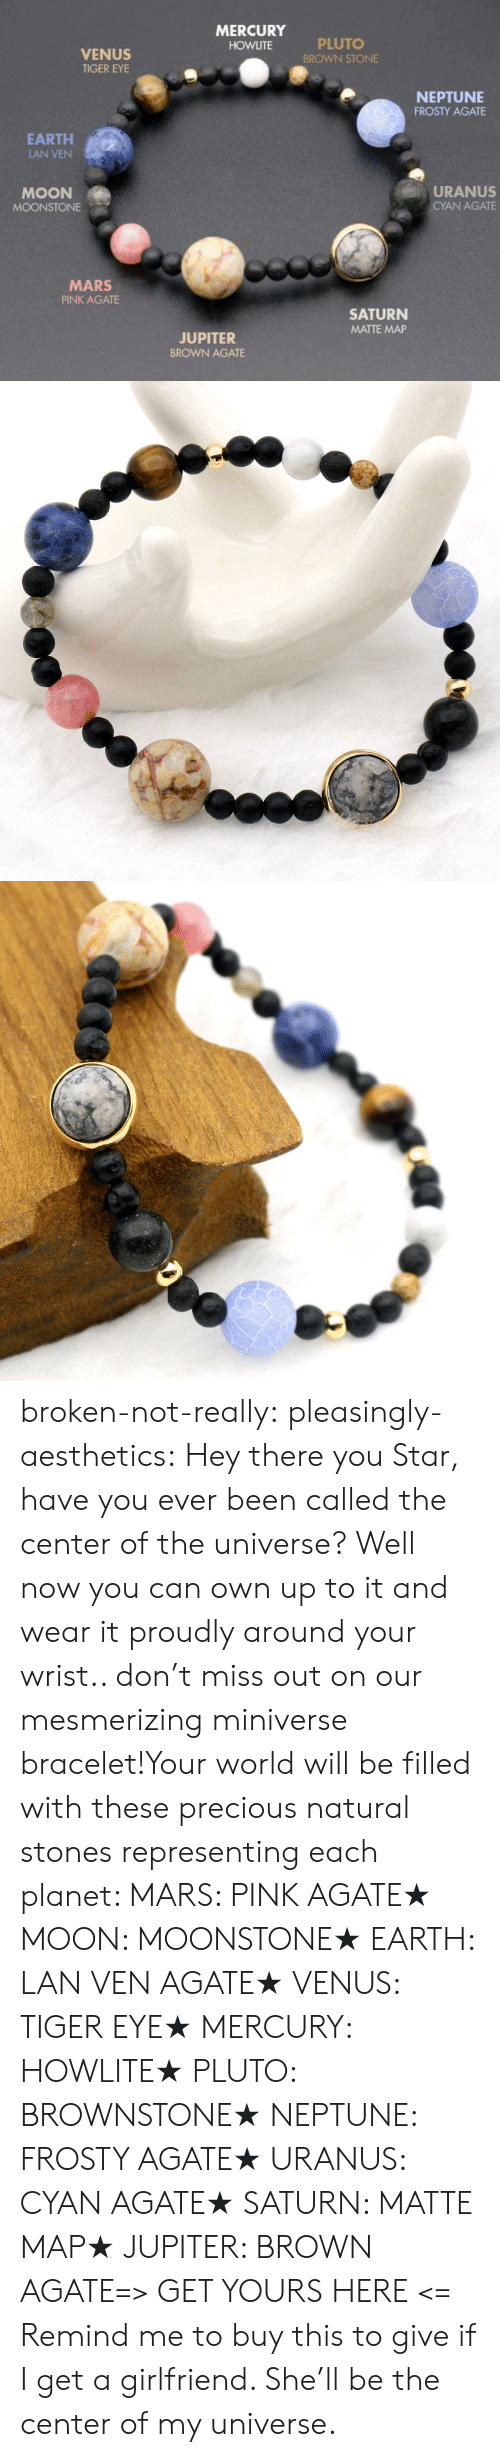 Precious, Tumblr, and Blog: MERCURY  PLUTO  BROWN STONE  HOWLITE  VENUS  TIGER EYE  NEPTUNE  FROSTY AGATE  EARTH  LAN VEN  URANUS  MOON  CYAN AGATE  MOONSTONE  MARS  PINK AGATE  SATURN  MATTE MAP  JUPITER  BROWN AGATE broken-not-really:  pleasingly-aesthetics:  Hey there you Star, have you ever been called the center of the universe? Well now you can own up to it and wear it proudly around your wrist.. don't miss out on our mesmerizing miniverse bracelet!Your world will be filled with these precious natural stones representing each planet: MARS: PINK AGATE★ MOON: MOONSTONE★ EARTH: LAN VEN AGATE★ VENUS: TIGER EYE★ MERCURY: HOWLITE★ PLUTO: BROWNSTONE★ NEPTUNE: FROSTY AGATE★ URANUS: CYAN AGATE★ SATURN: MATTE MAP★ JUPITER: BROWN AGATE=> GET YOURS HERE <=  Remind me to buy this to give if I get a girlfriend. She'll be the center of my universe.